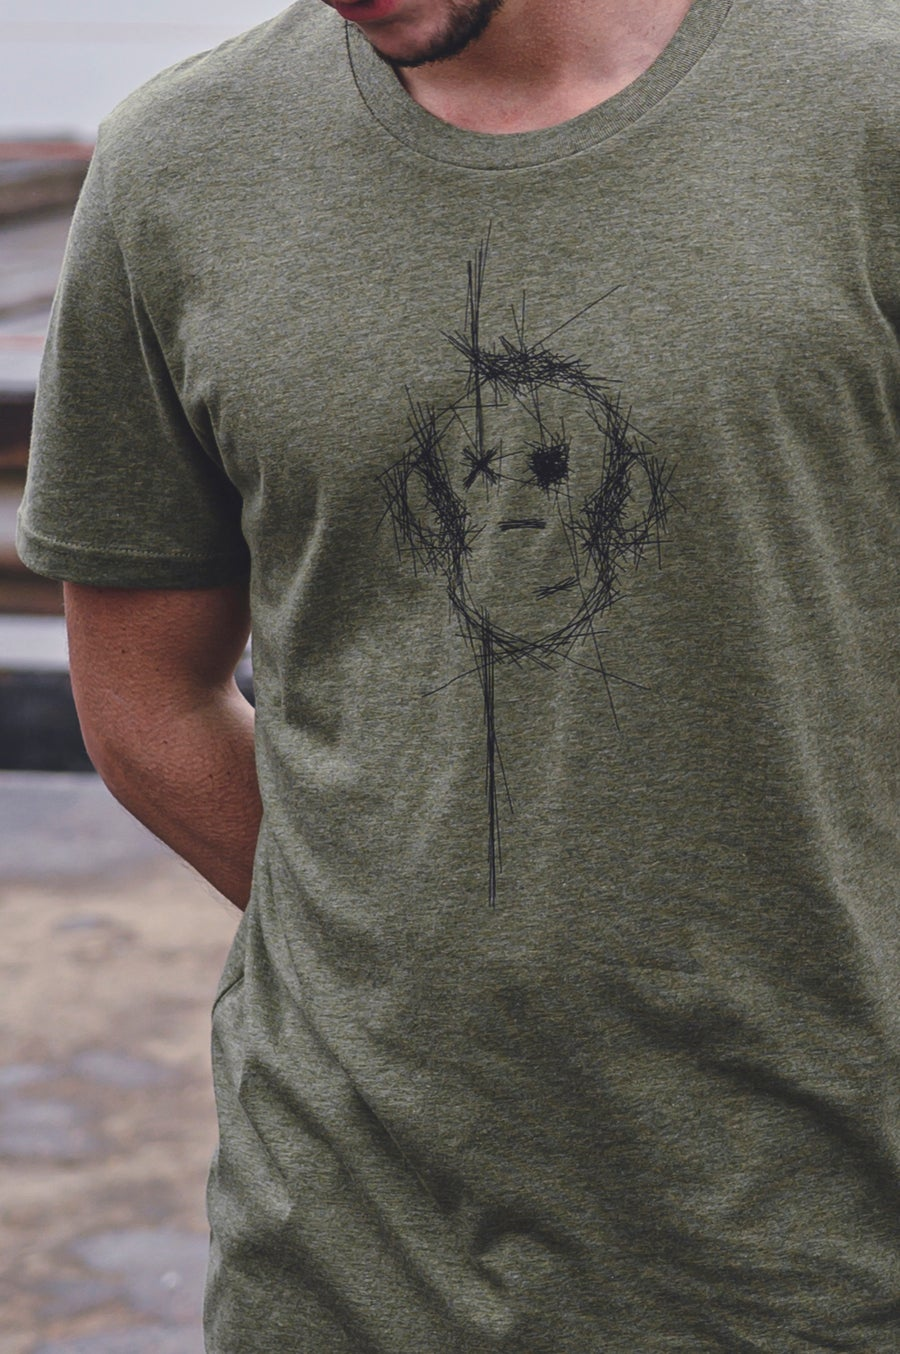 Image of Monkey Climber Surface shirt I Mid Heather Khaki